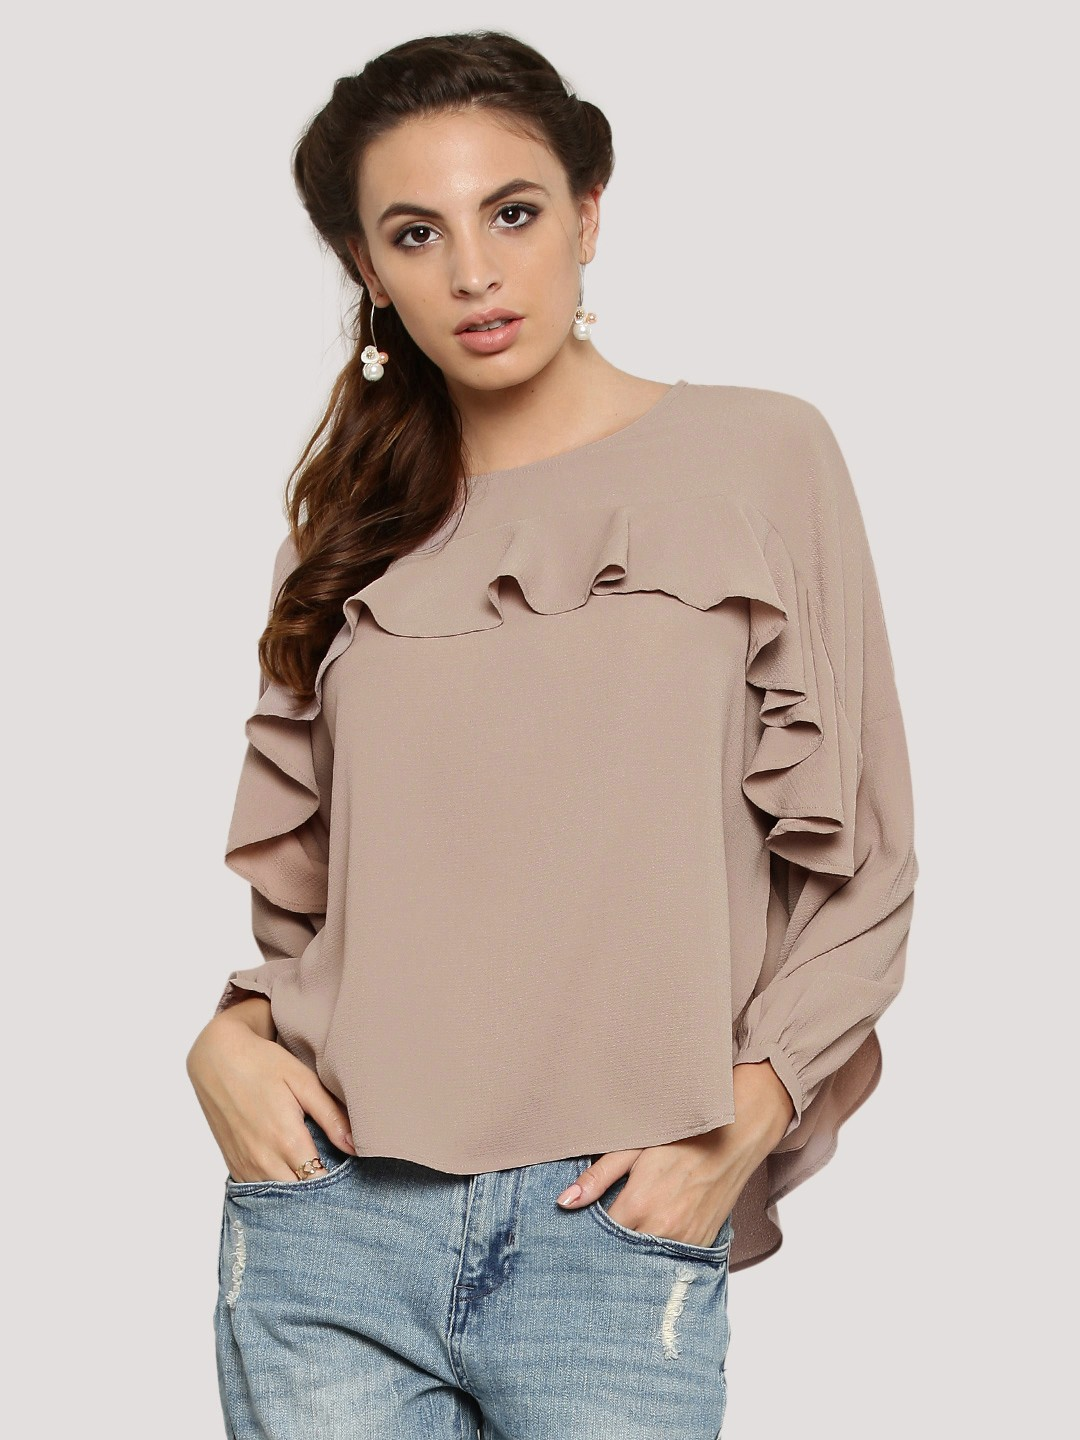 More Details Fuzzi Scroll-Trim Poplin Oversized Top Details Fuzzi poplin top with scroll-print trim. Spread collar; button front. Spread collar; button front. Long sleeves; button cuffs.